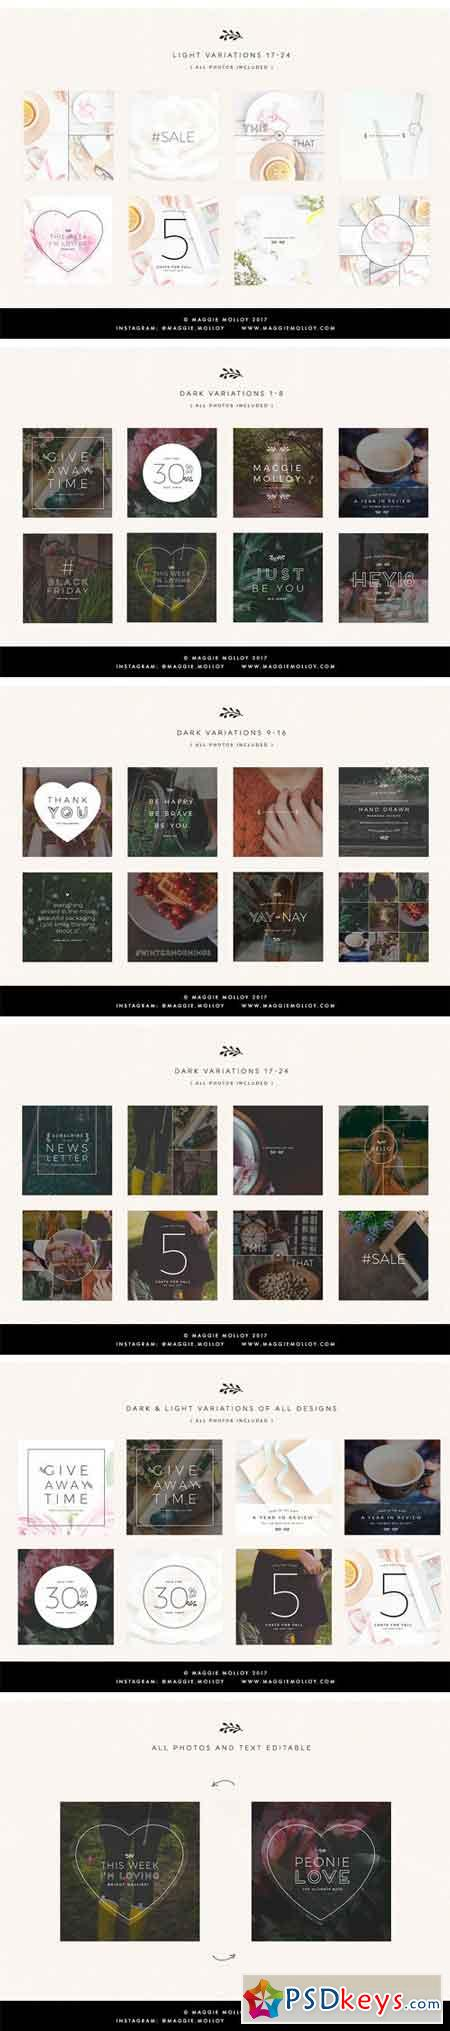 Wildflowers Instagram Template Pack 1758194